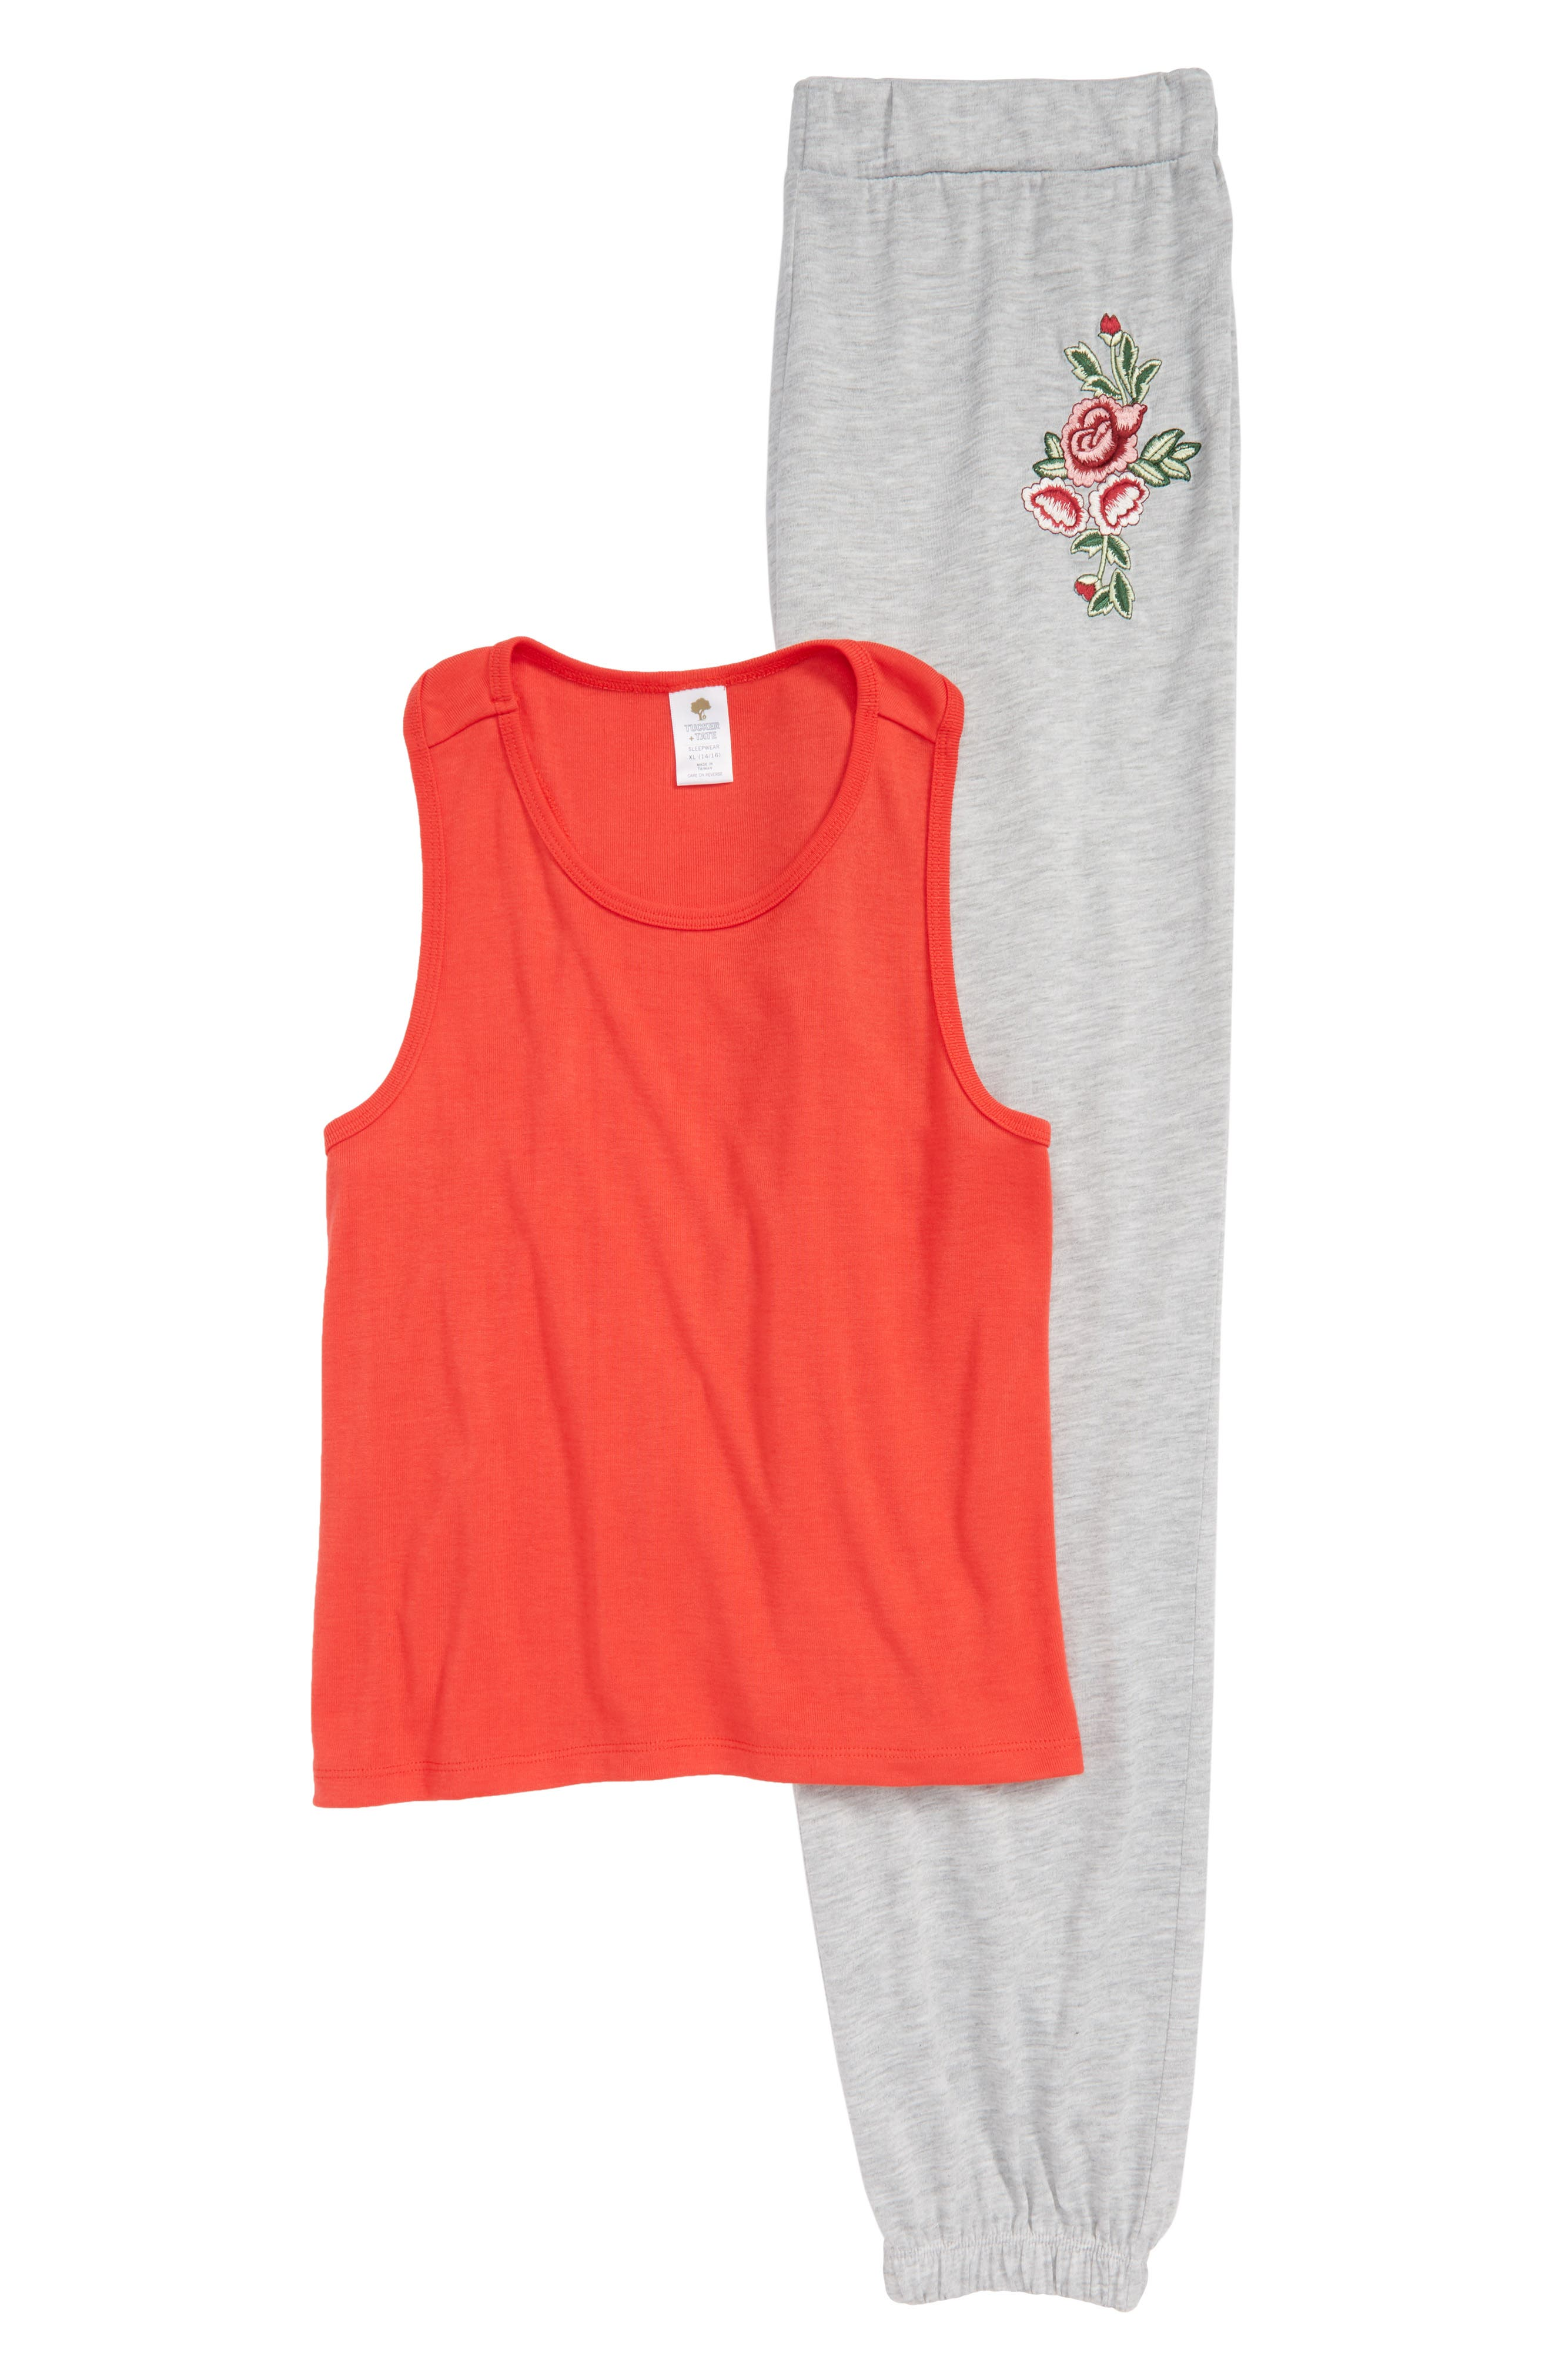 Two-Piece Pajamas Set,                         Main,                         color, Red Bittersweet- Grey